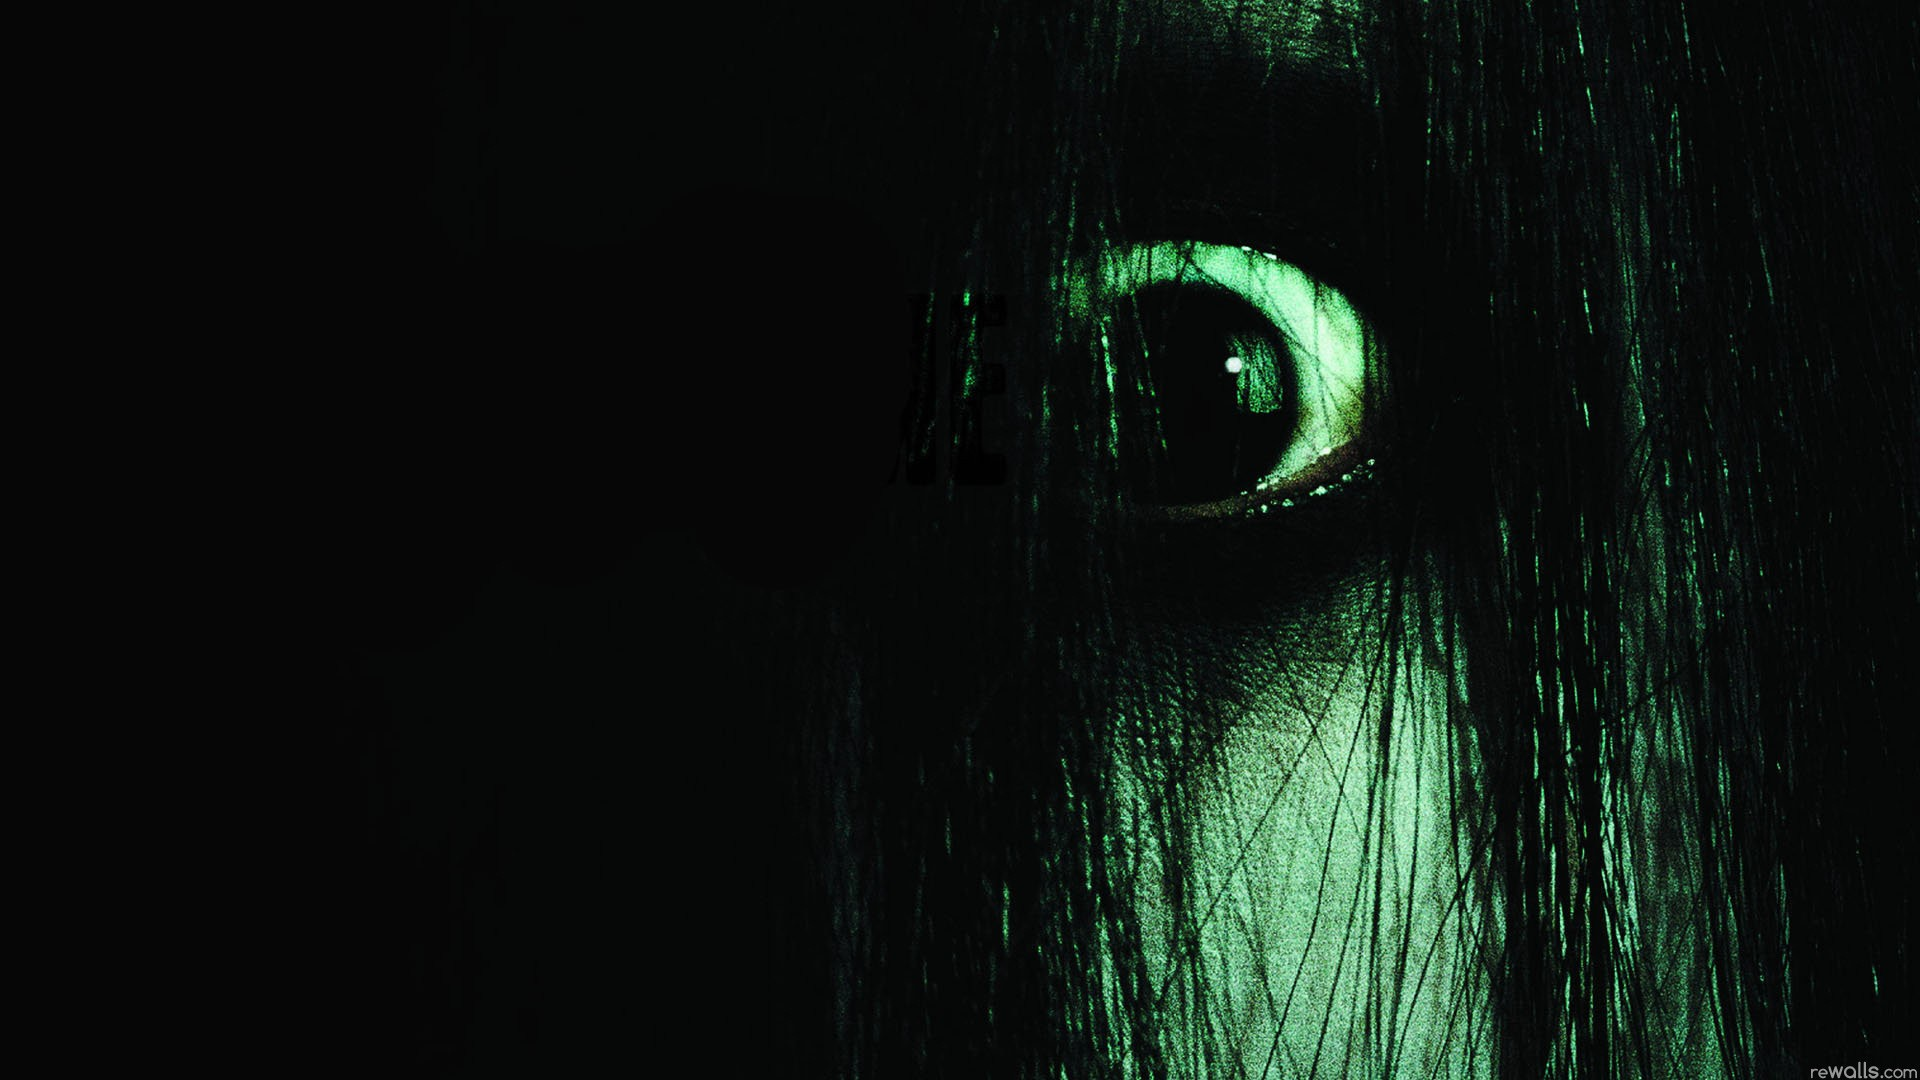 10 New Horror Movie Wallpaper Hd Full Hd 1920 1080 For Pc: 13+ Horror Wallpapers ·① Download Free Cool High